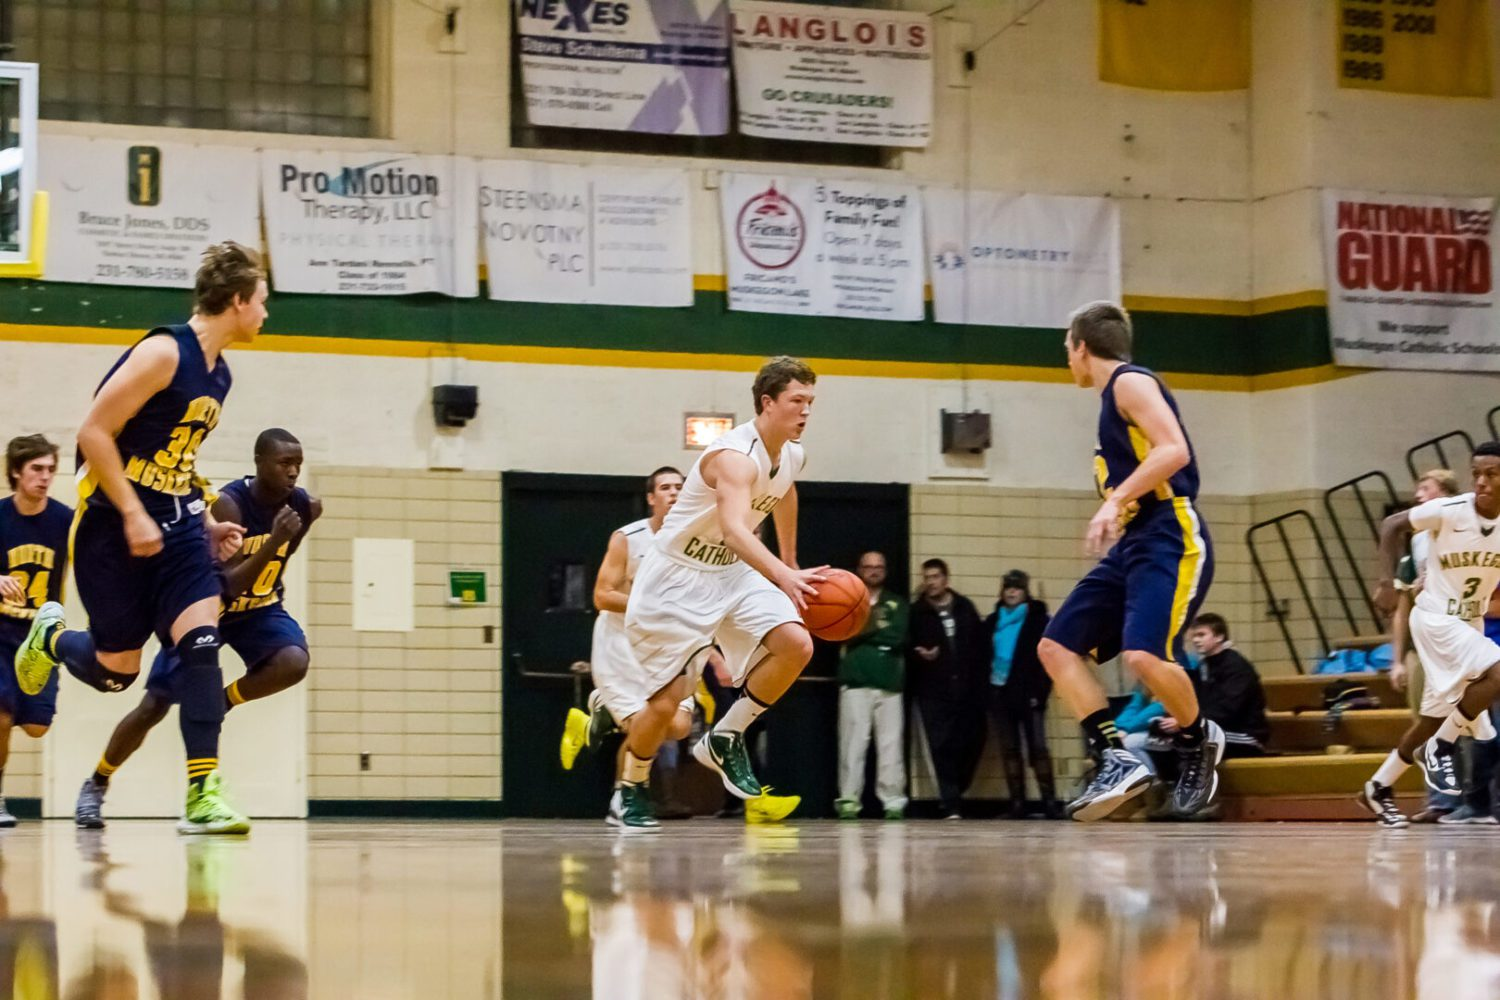 After terrific start, Muskegon Catholic nearly succumbs to late Norse charge in boys hoops opener